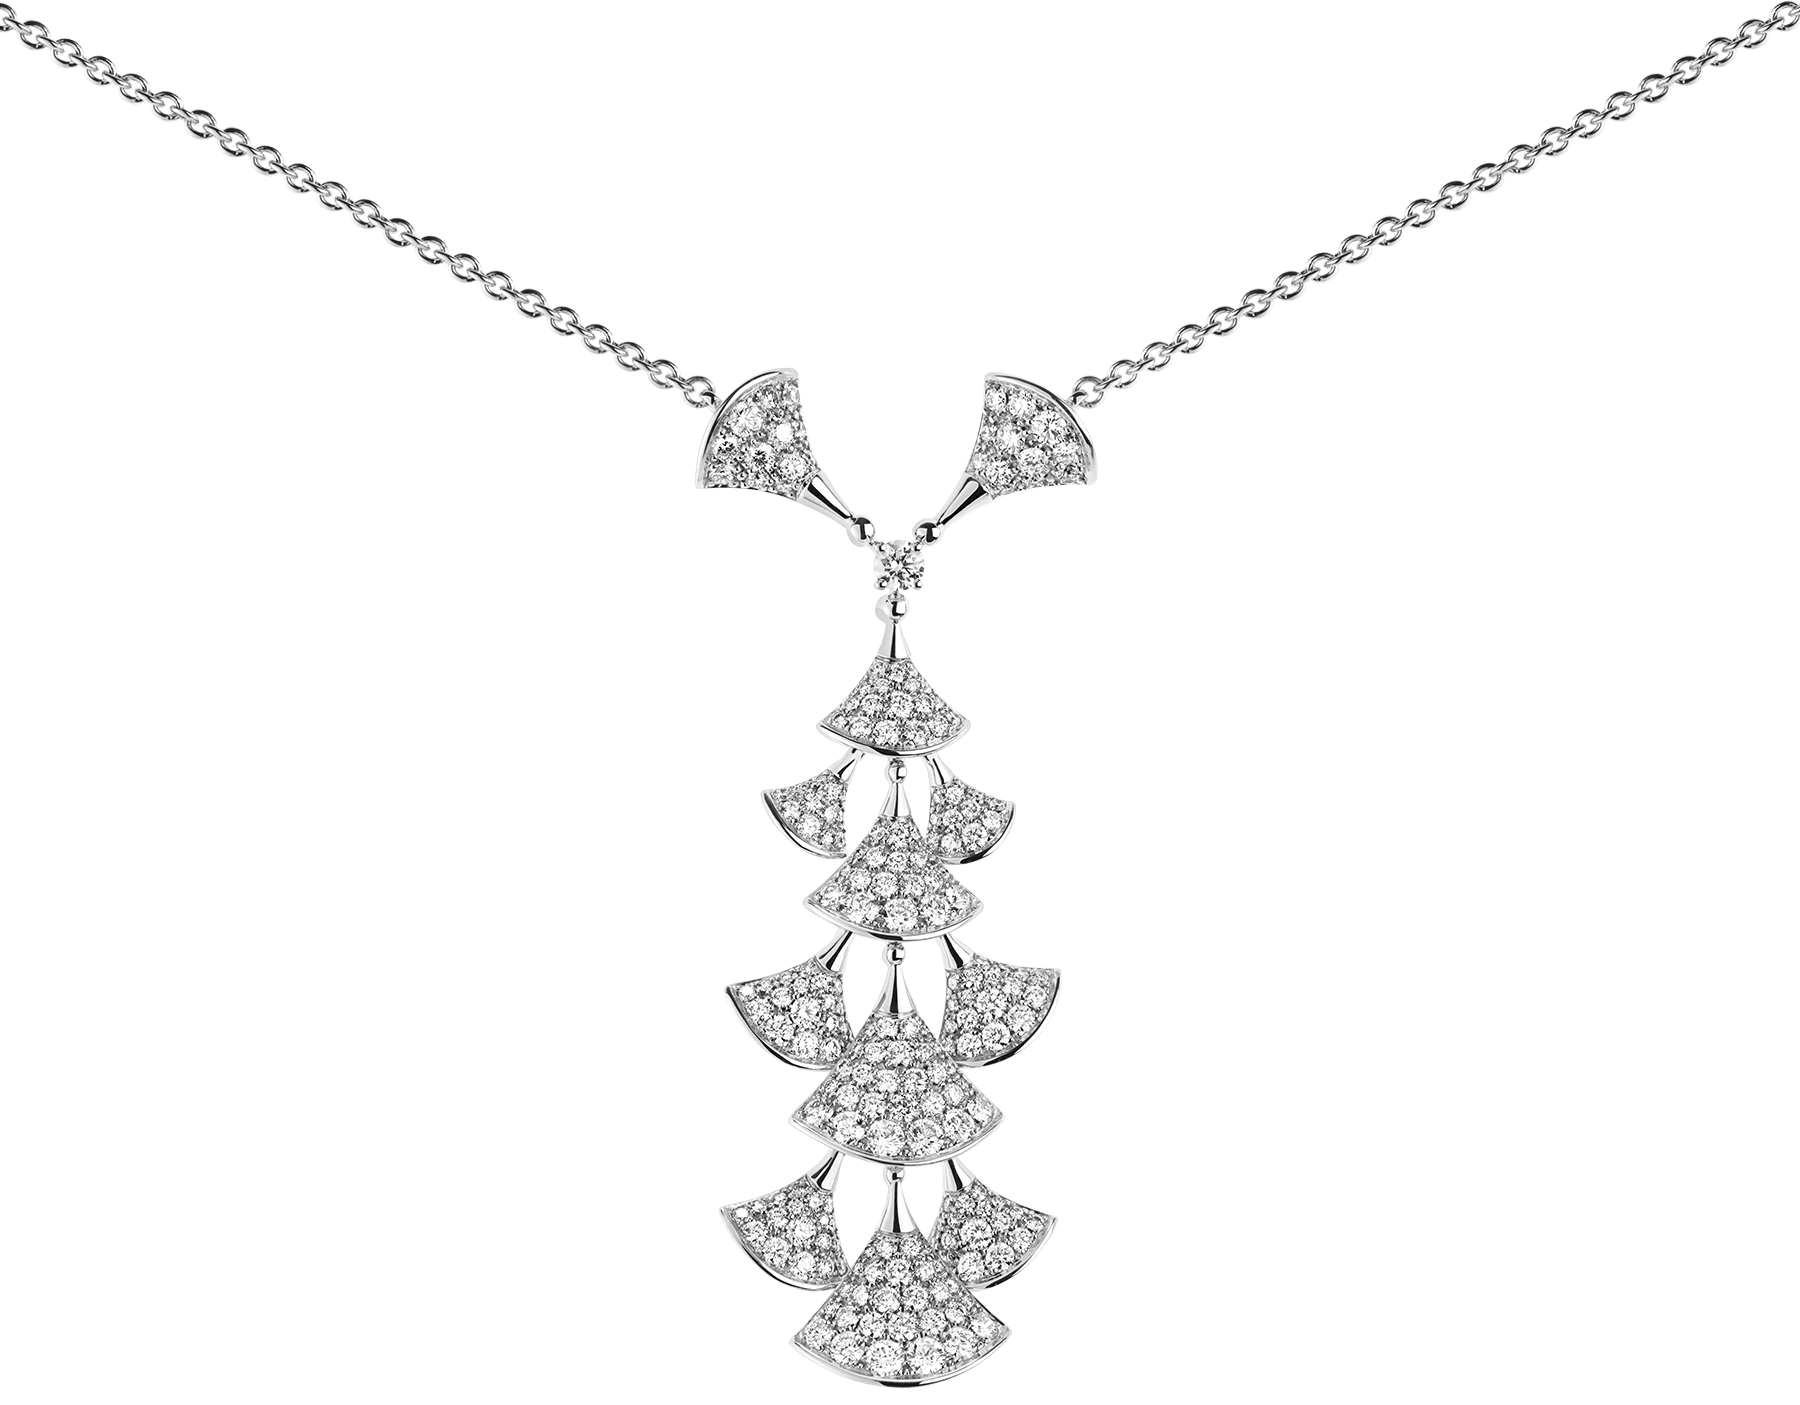 DIVAS' DREAM 18 kt white gold necklace set with diamonds and full pavé diamonds. 352608 image 3